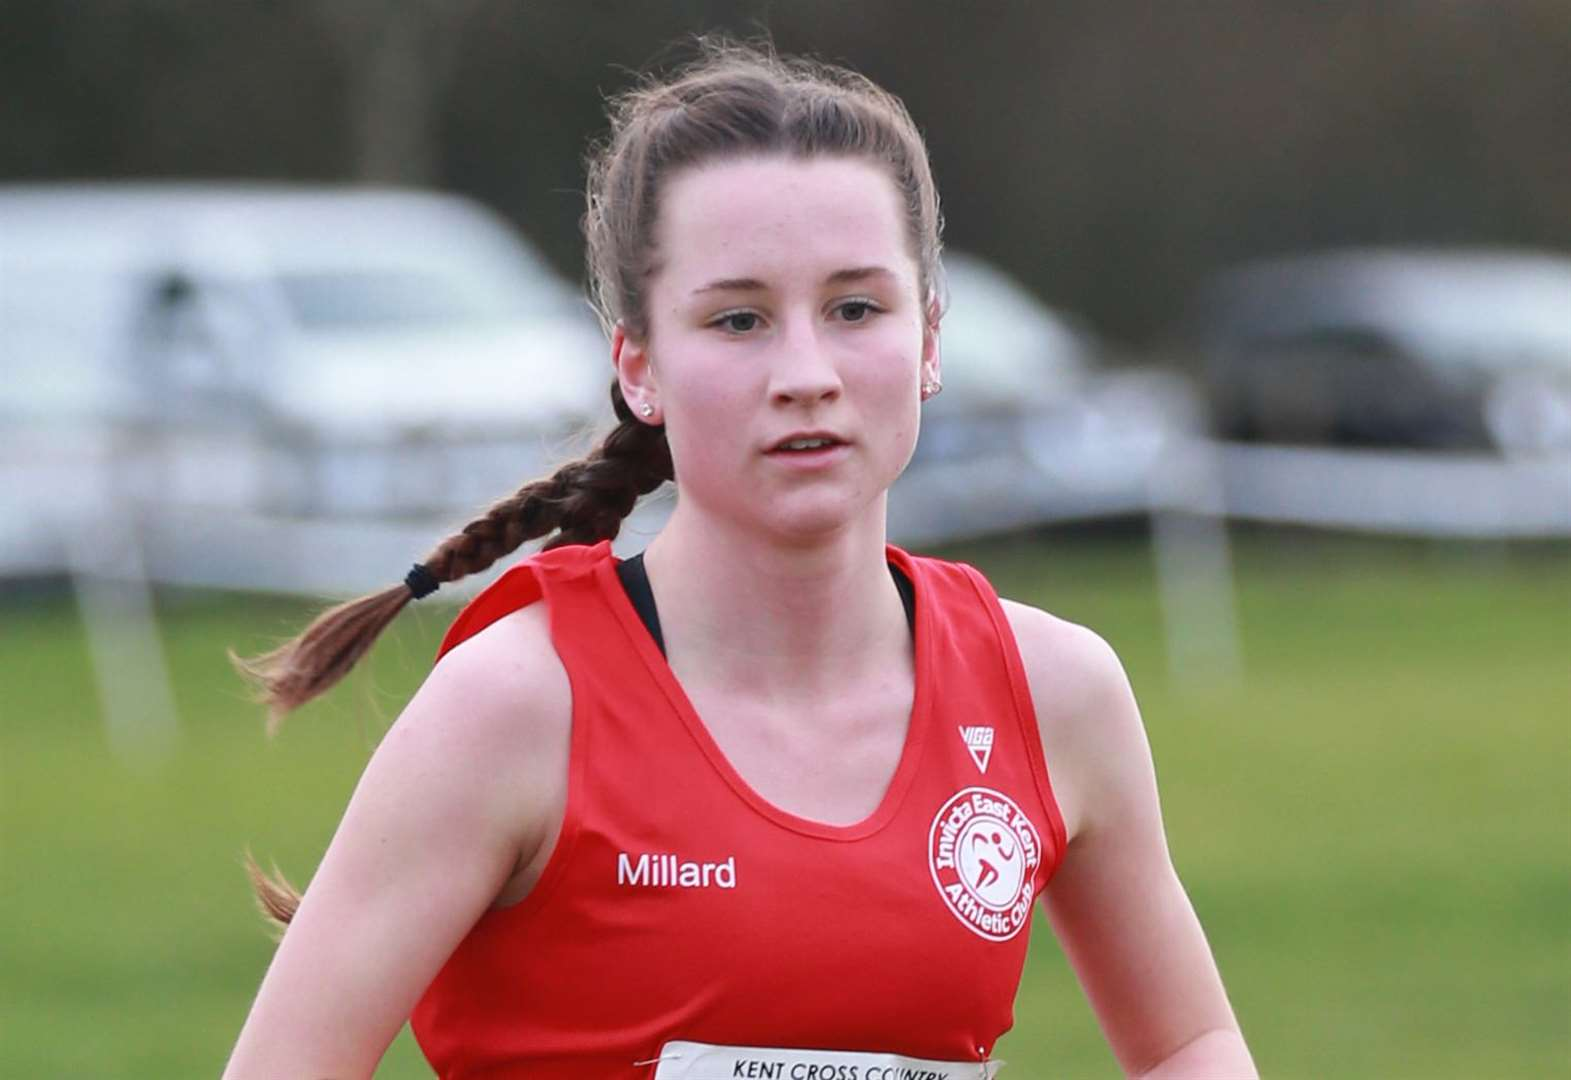 Kent Cross-Country Championships 2020 - top 10 pictures